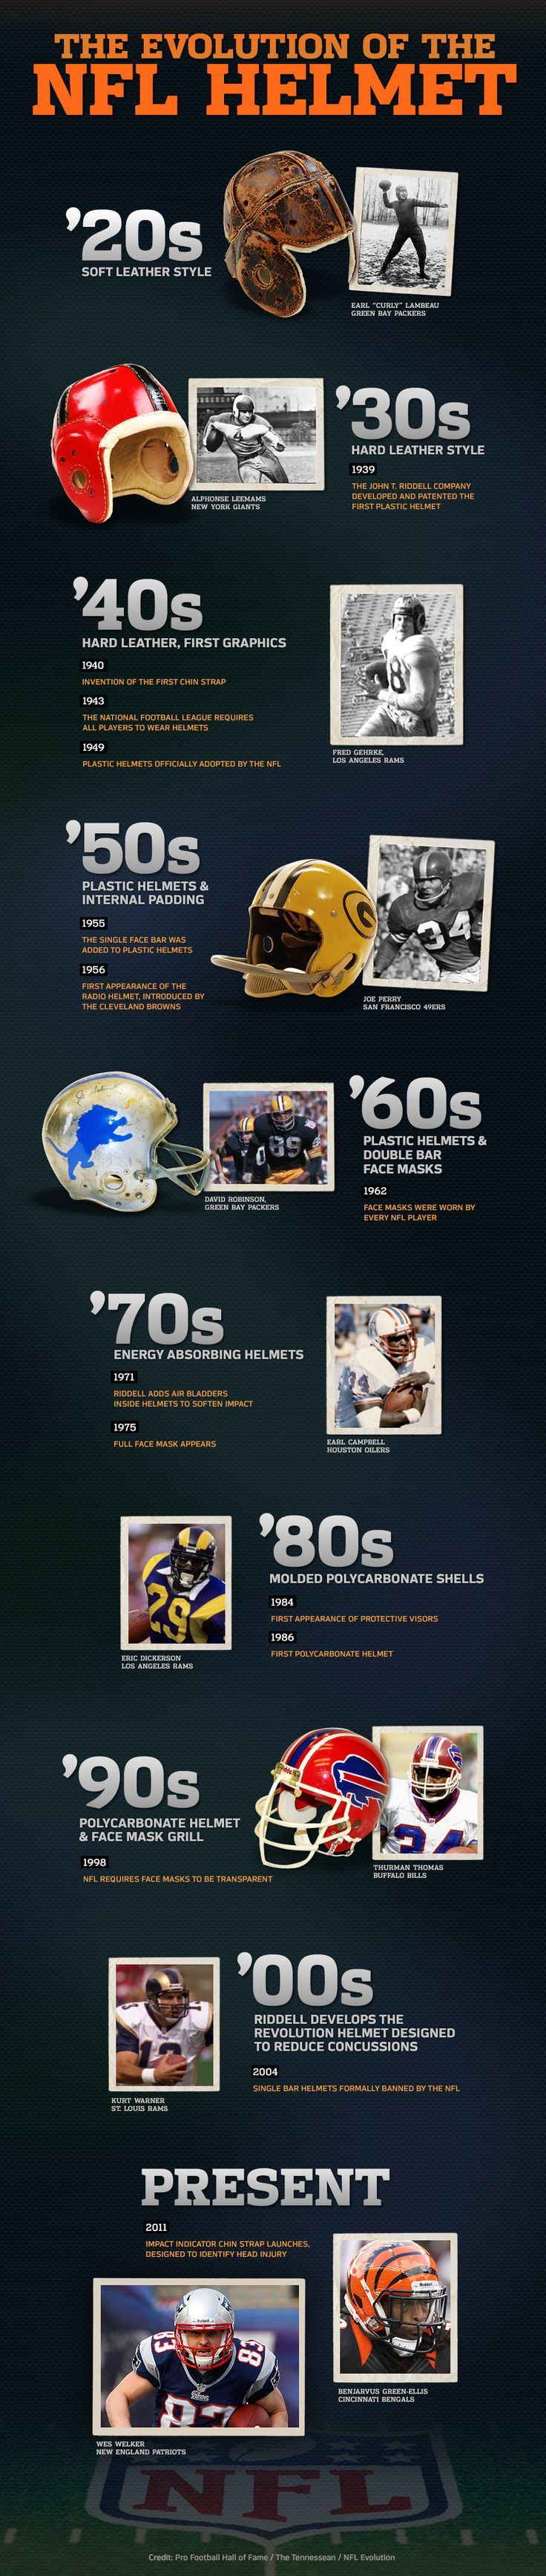 See how much has changed with the evolution of the NFL